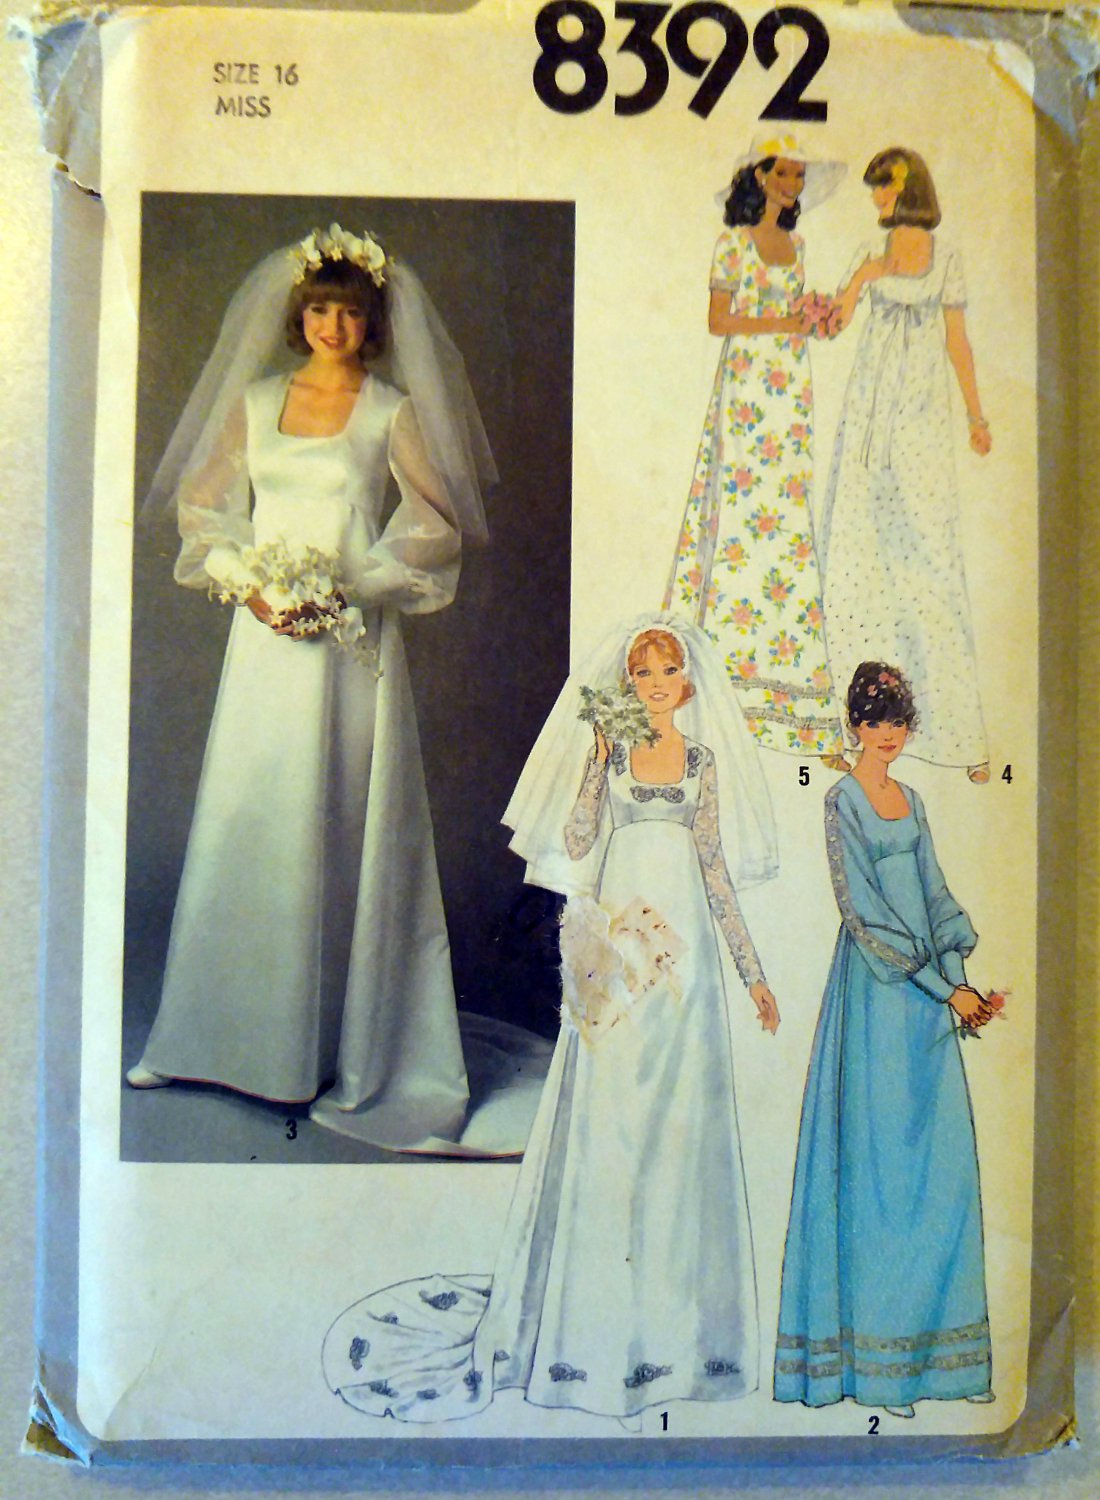 Vintage 70s Simplicity 8392 Pattern, Wedding or Bridesmaid Dress, Sz 16 Bust 38, Uncut